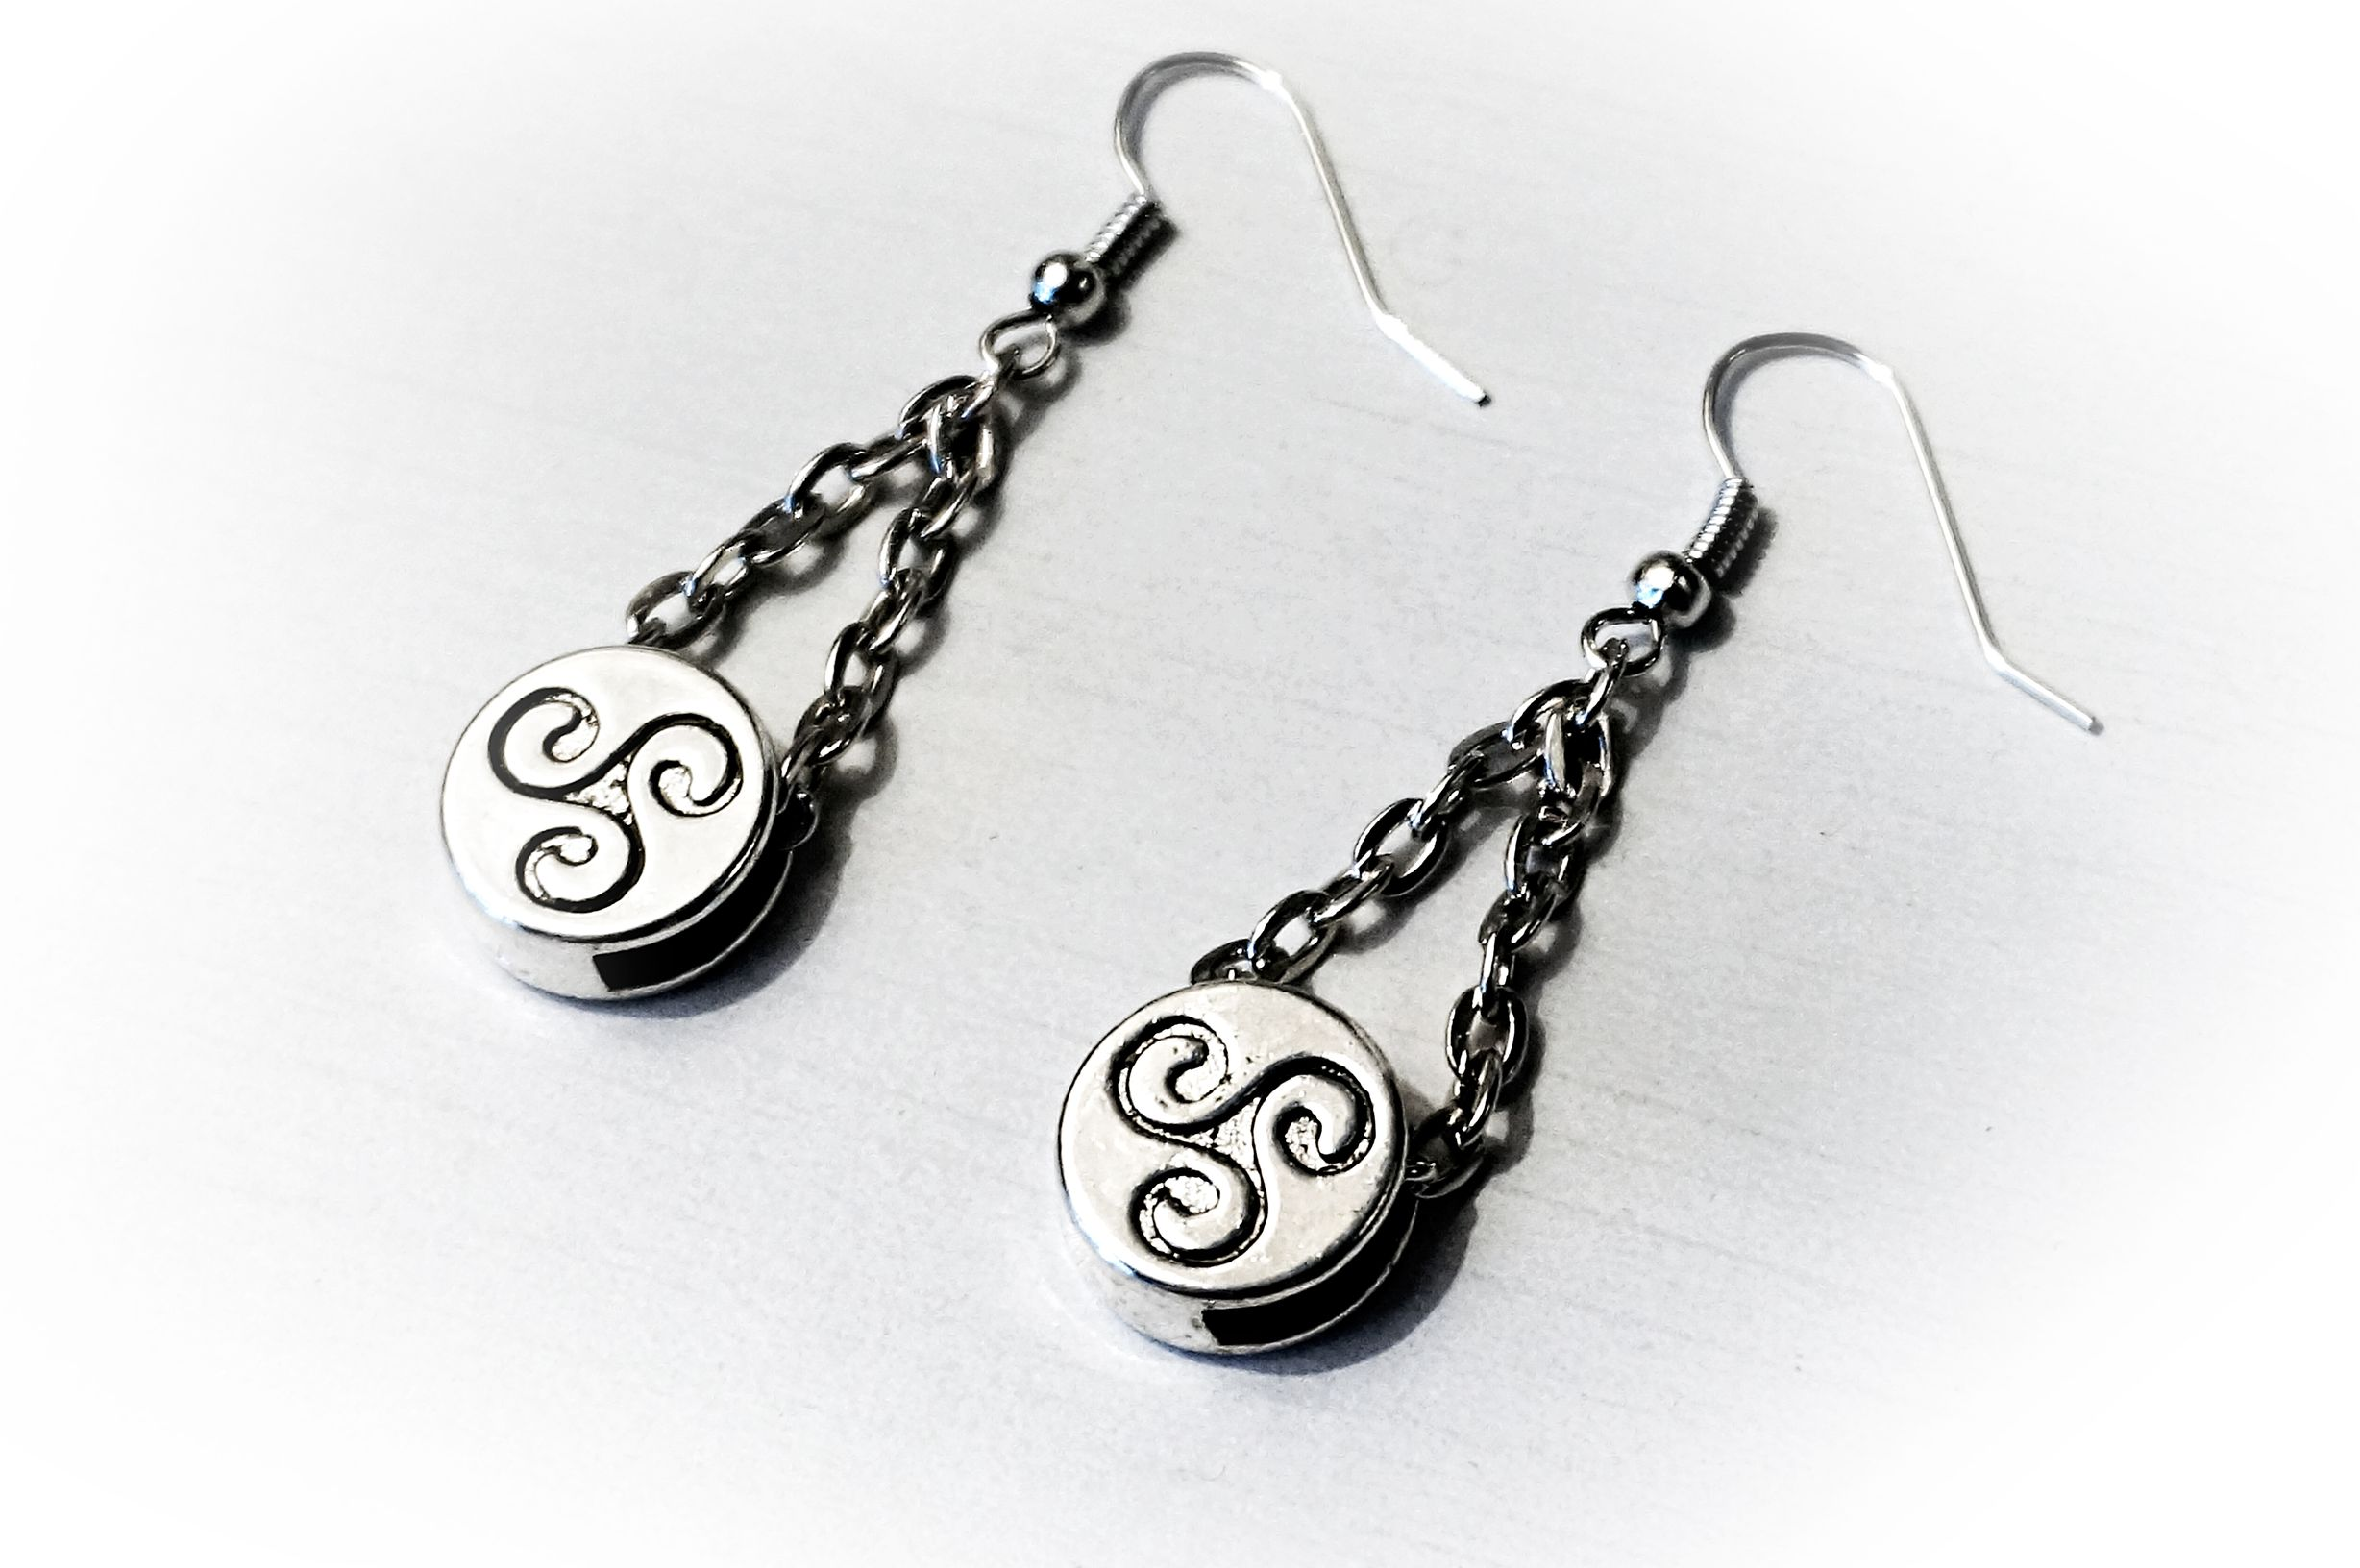 bdsm earrings submissive dominant jewelry